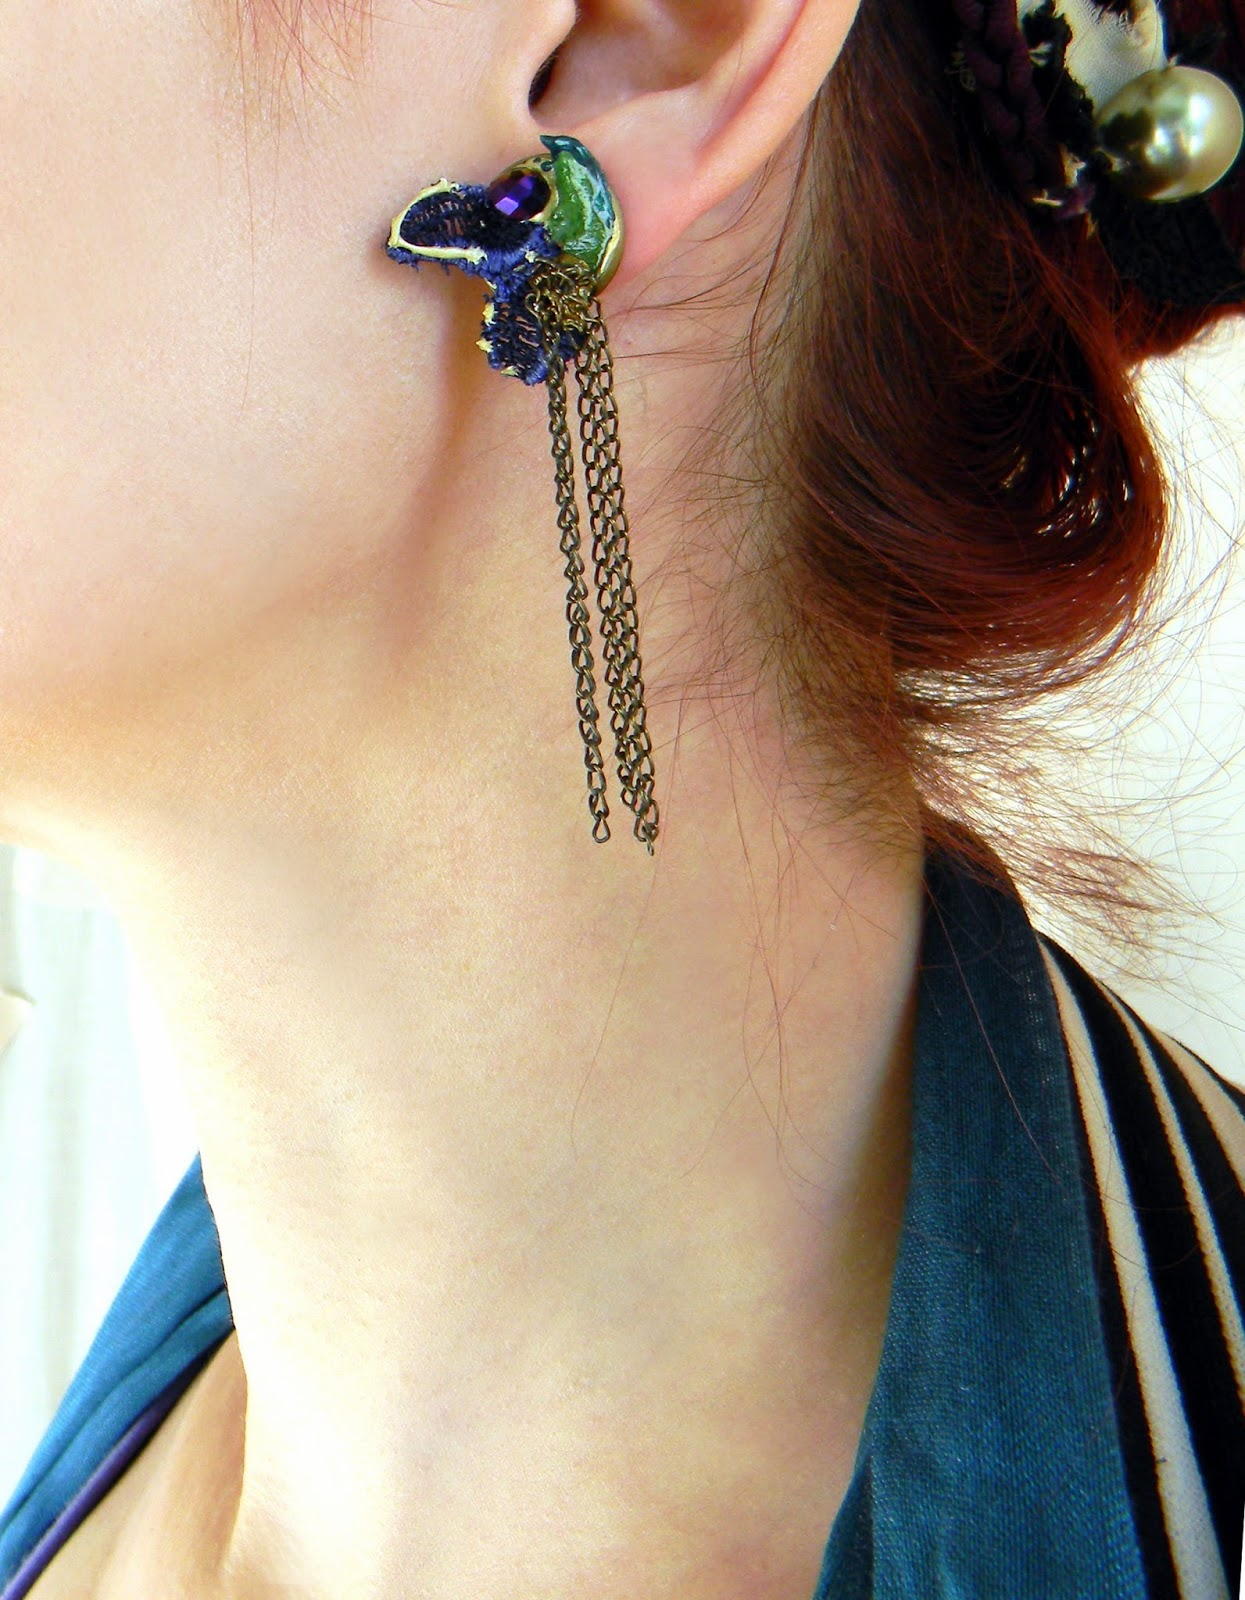 Original Post earrings with Organic Leaves, Bronze Chains and Blue Lace